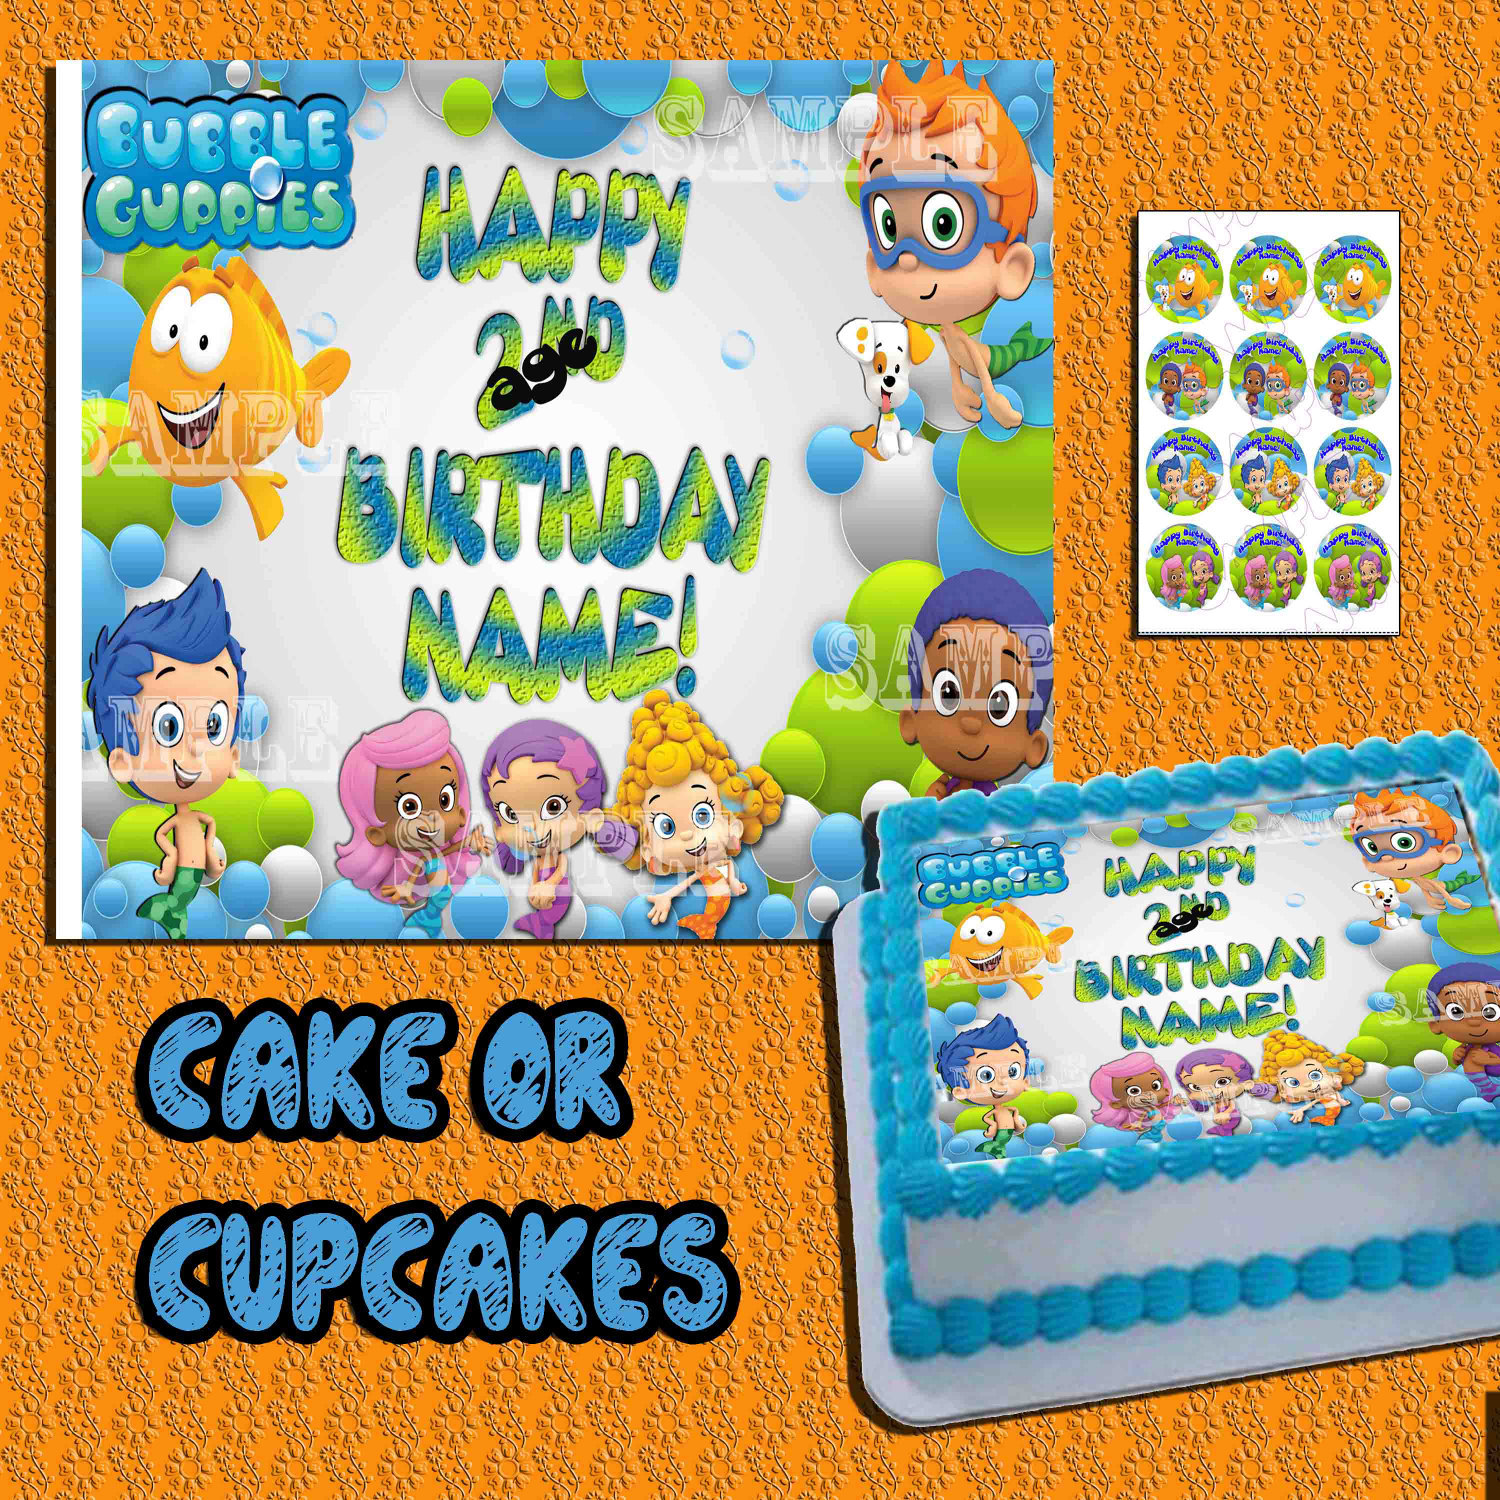 Admirable Bubble Guppies Edible Cake Toppers Birthday And 21 Similar Items Personalised Birthday Cards Veneteletsinfo